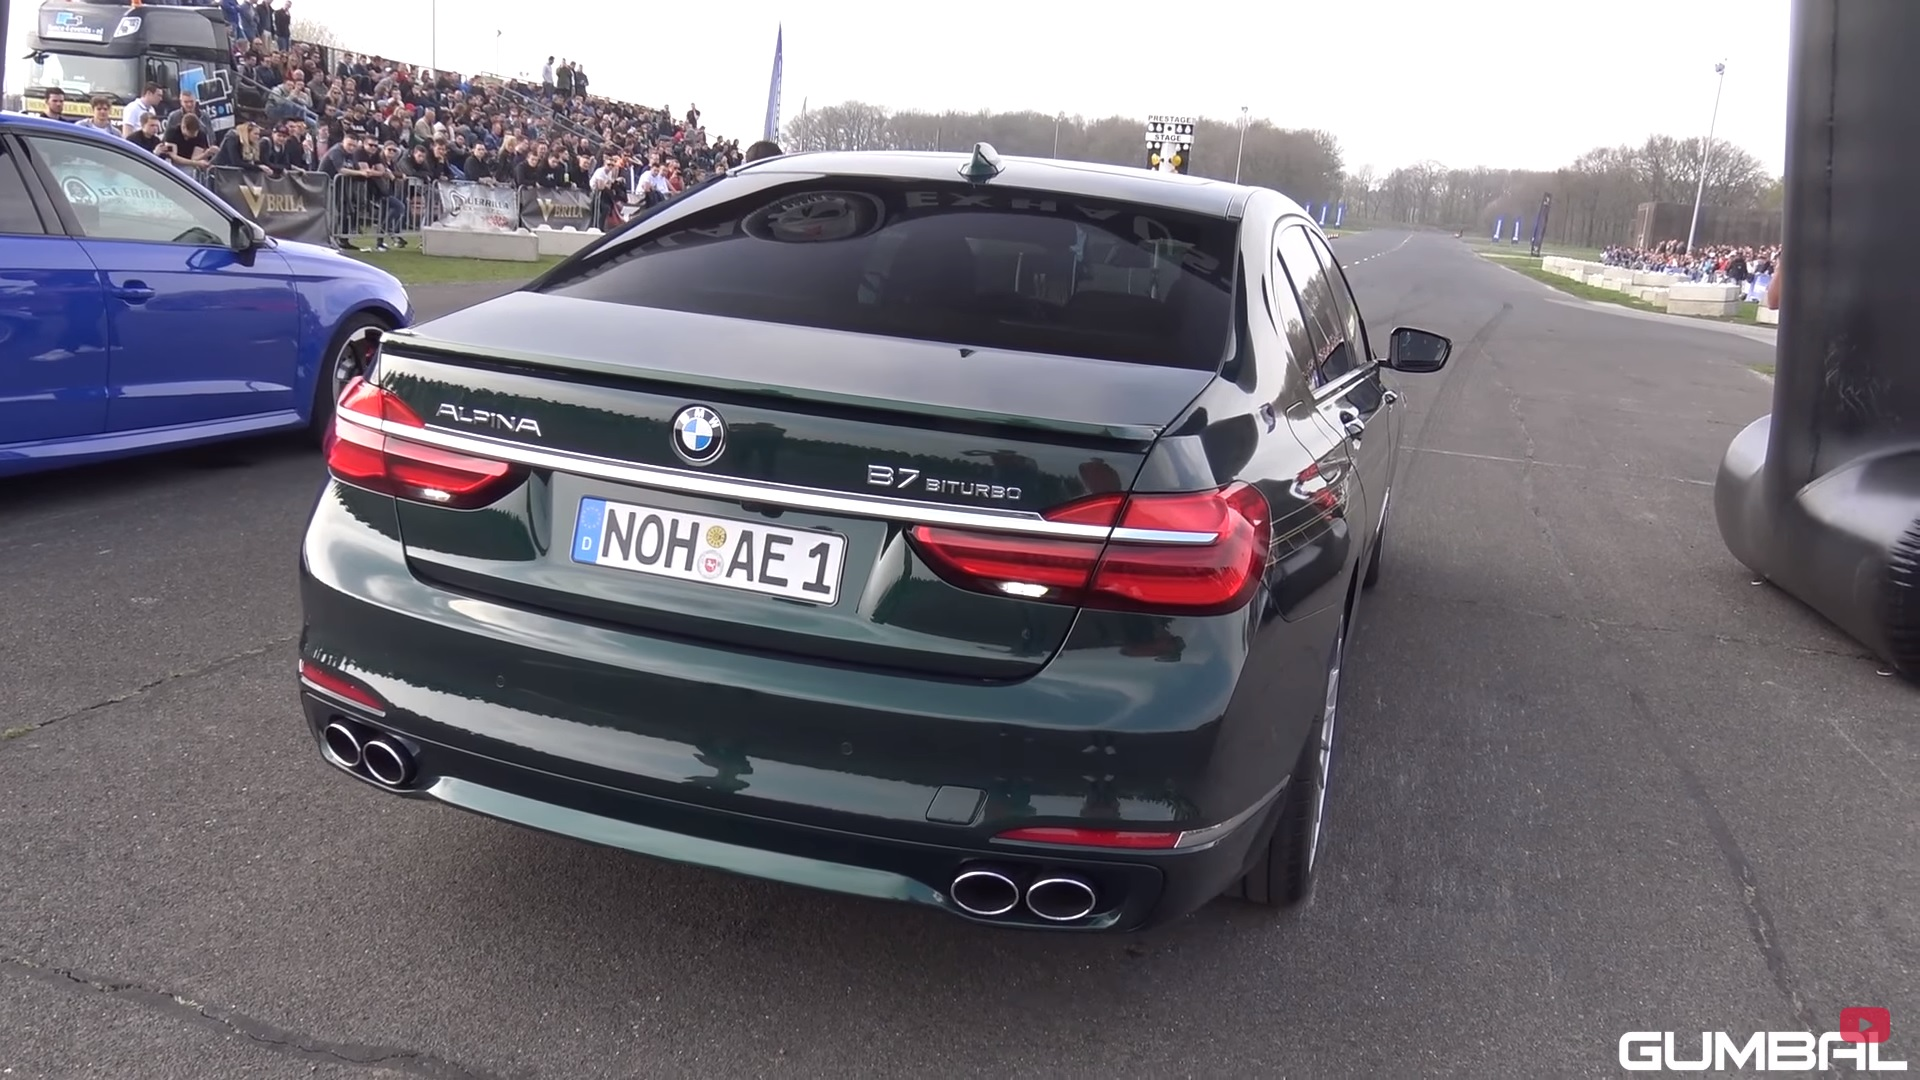 Sleduj video! BMW Alpina B7 BiTurbo vs. Mercedes-Benz C63S AMG vs. Audi RS6 Avant!